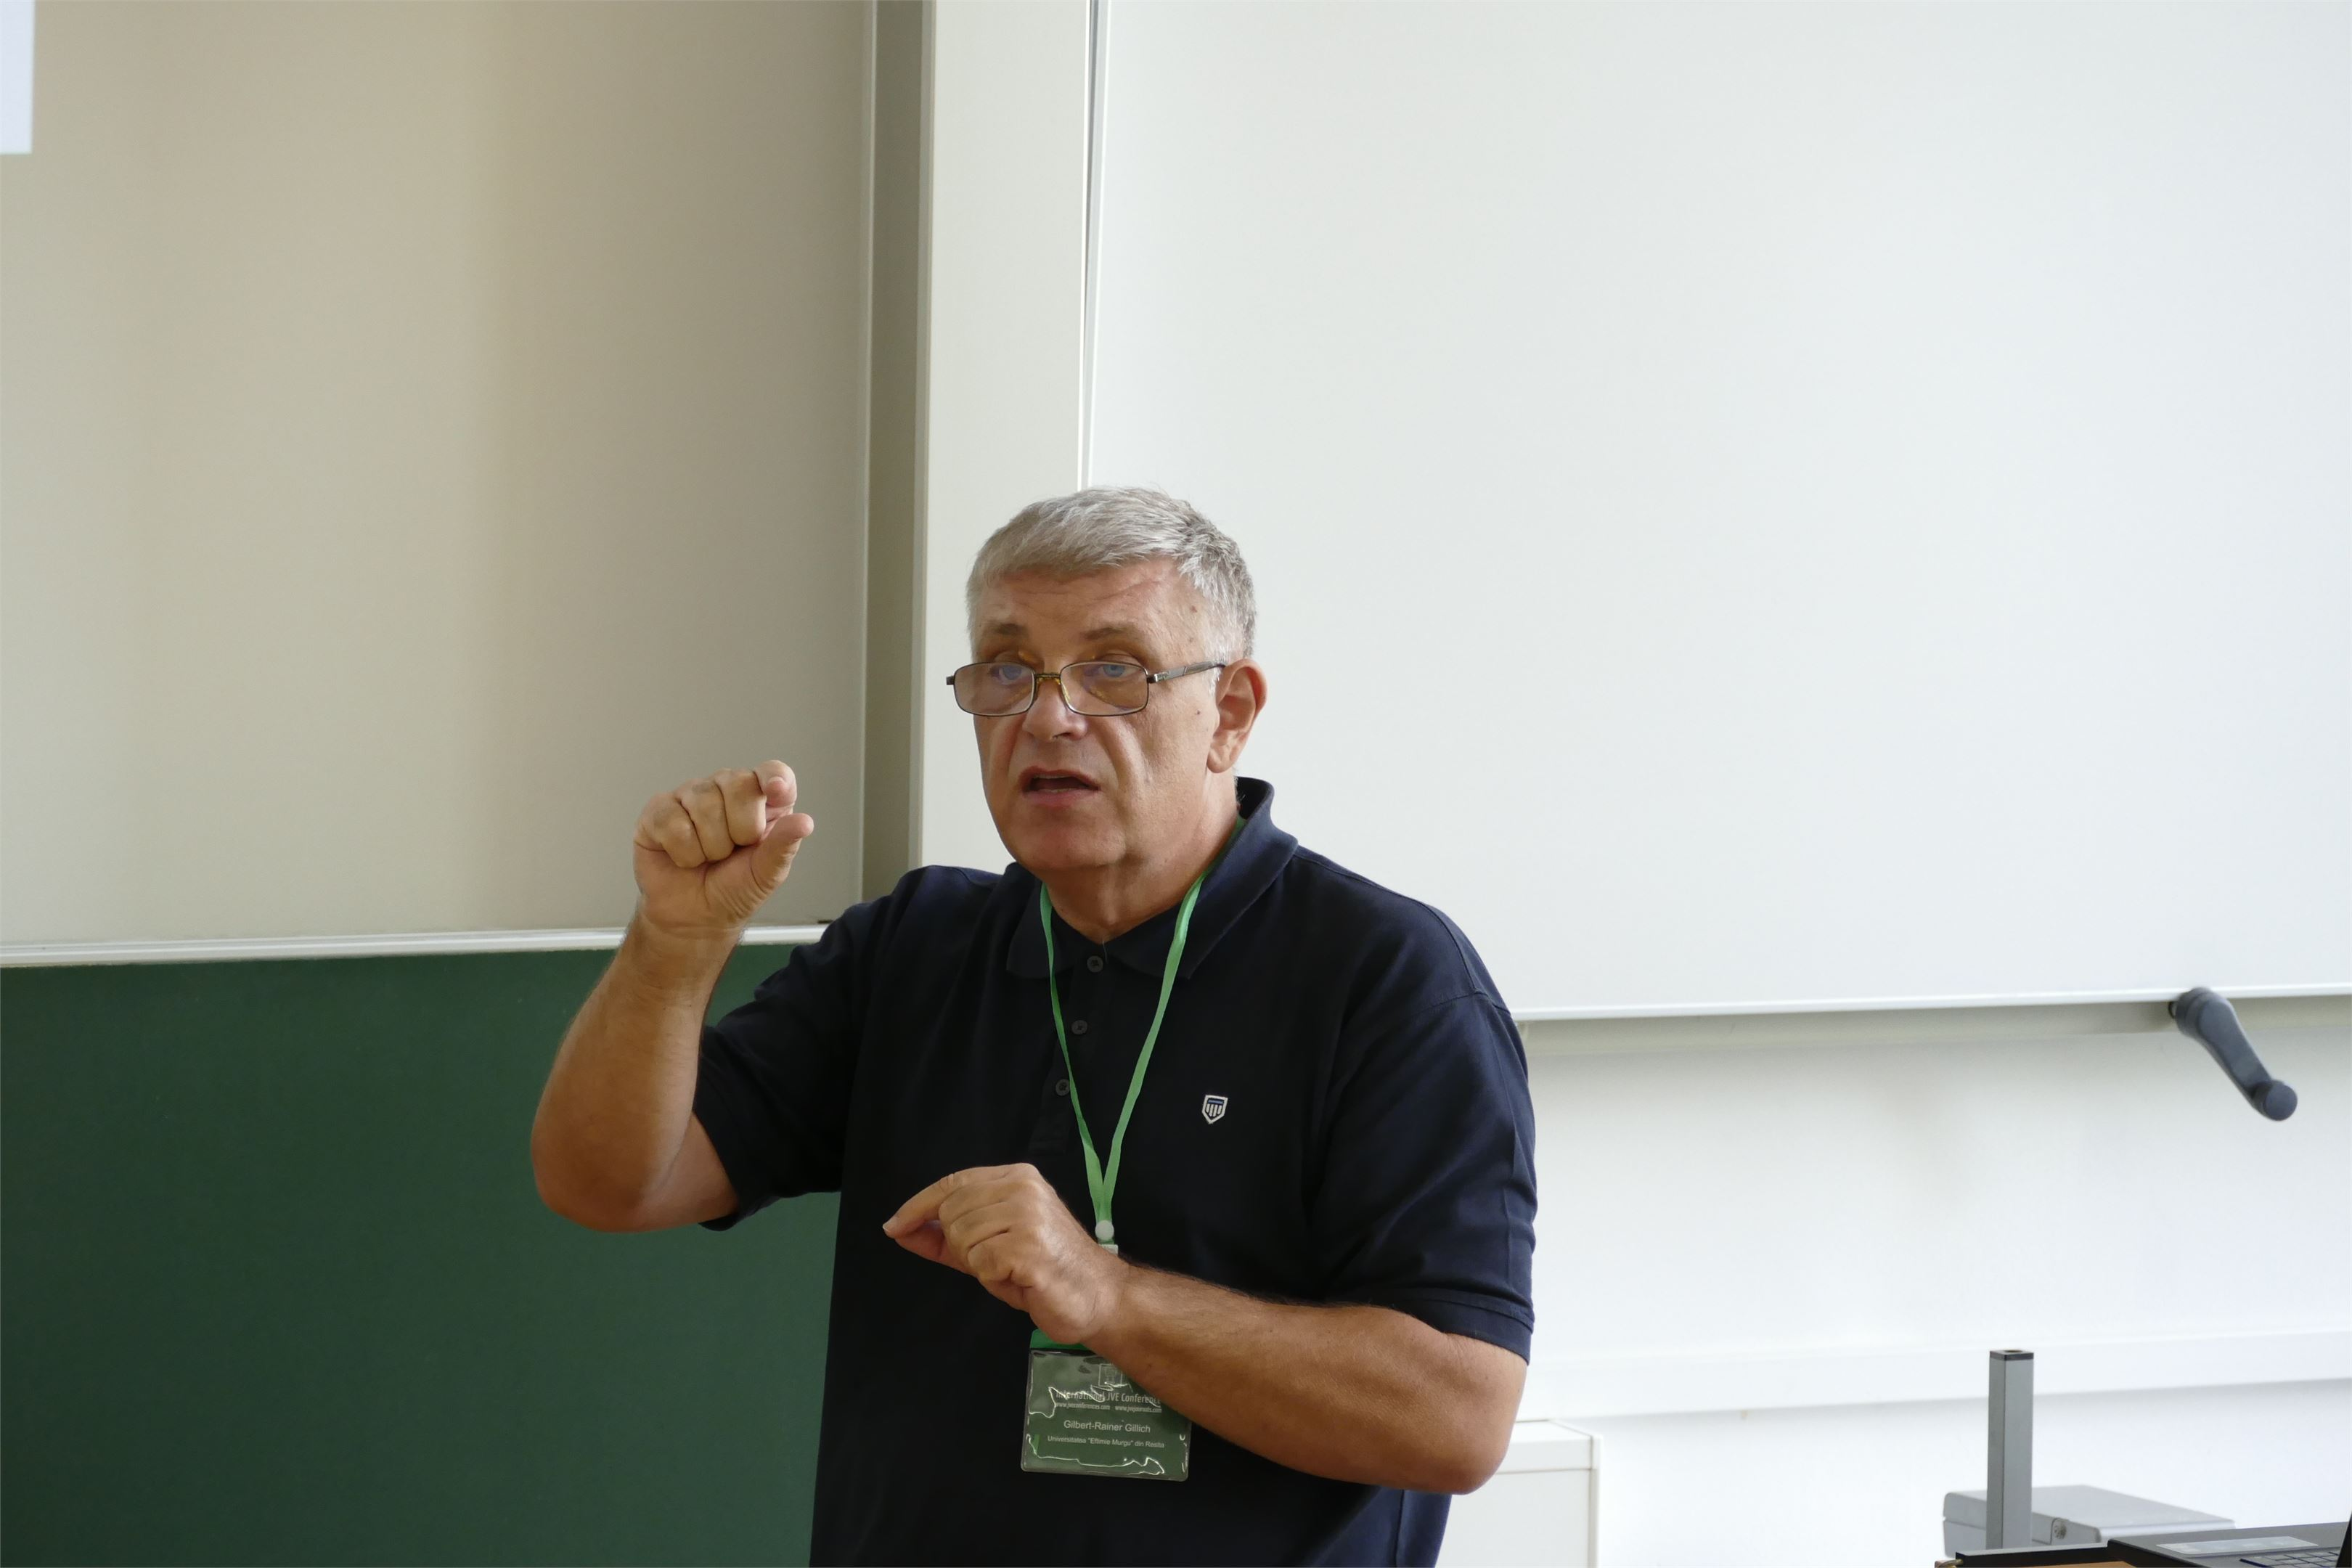 41st Conference in Leipzig, Germany | JVE Conferences